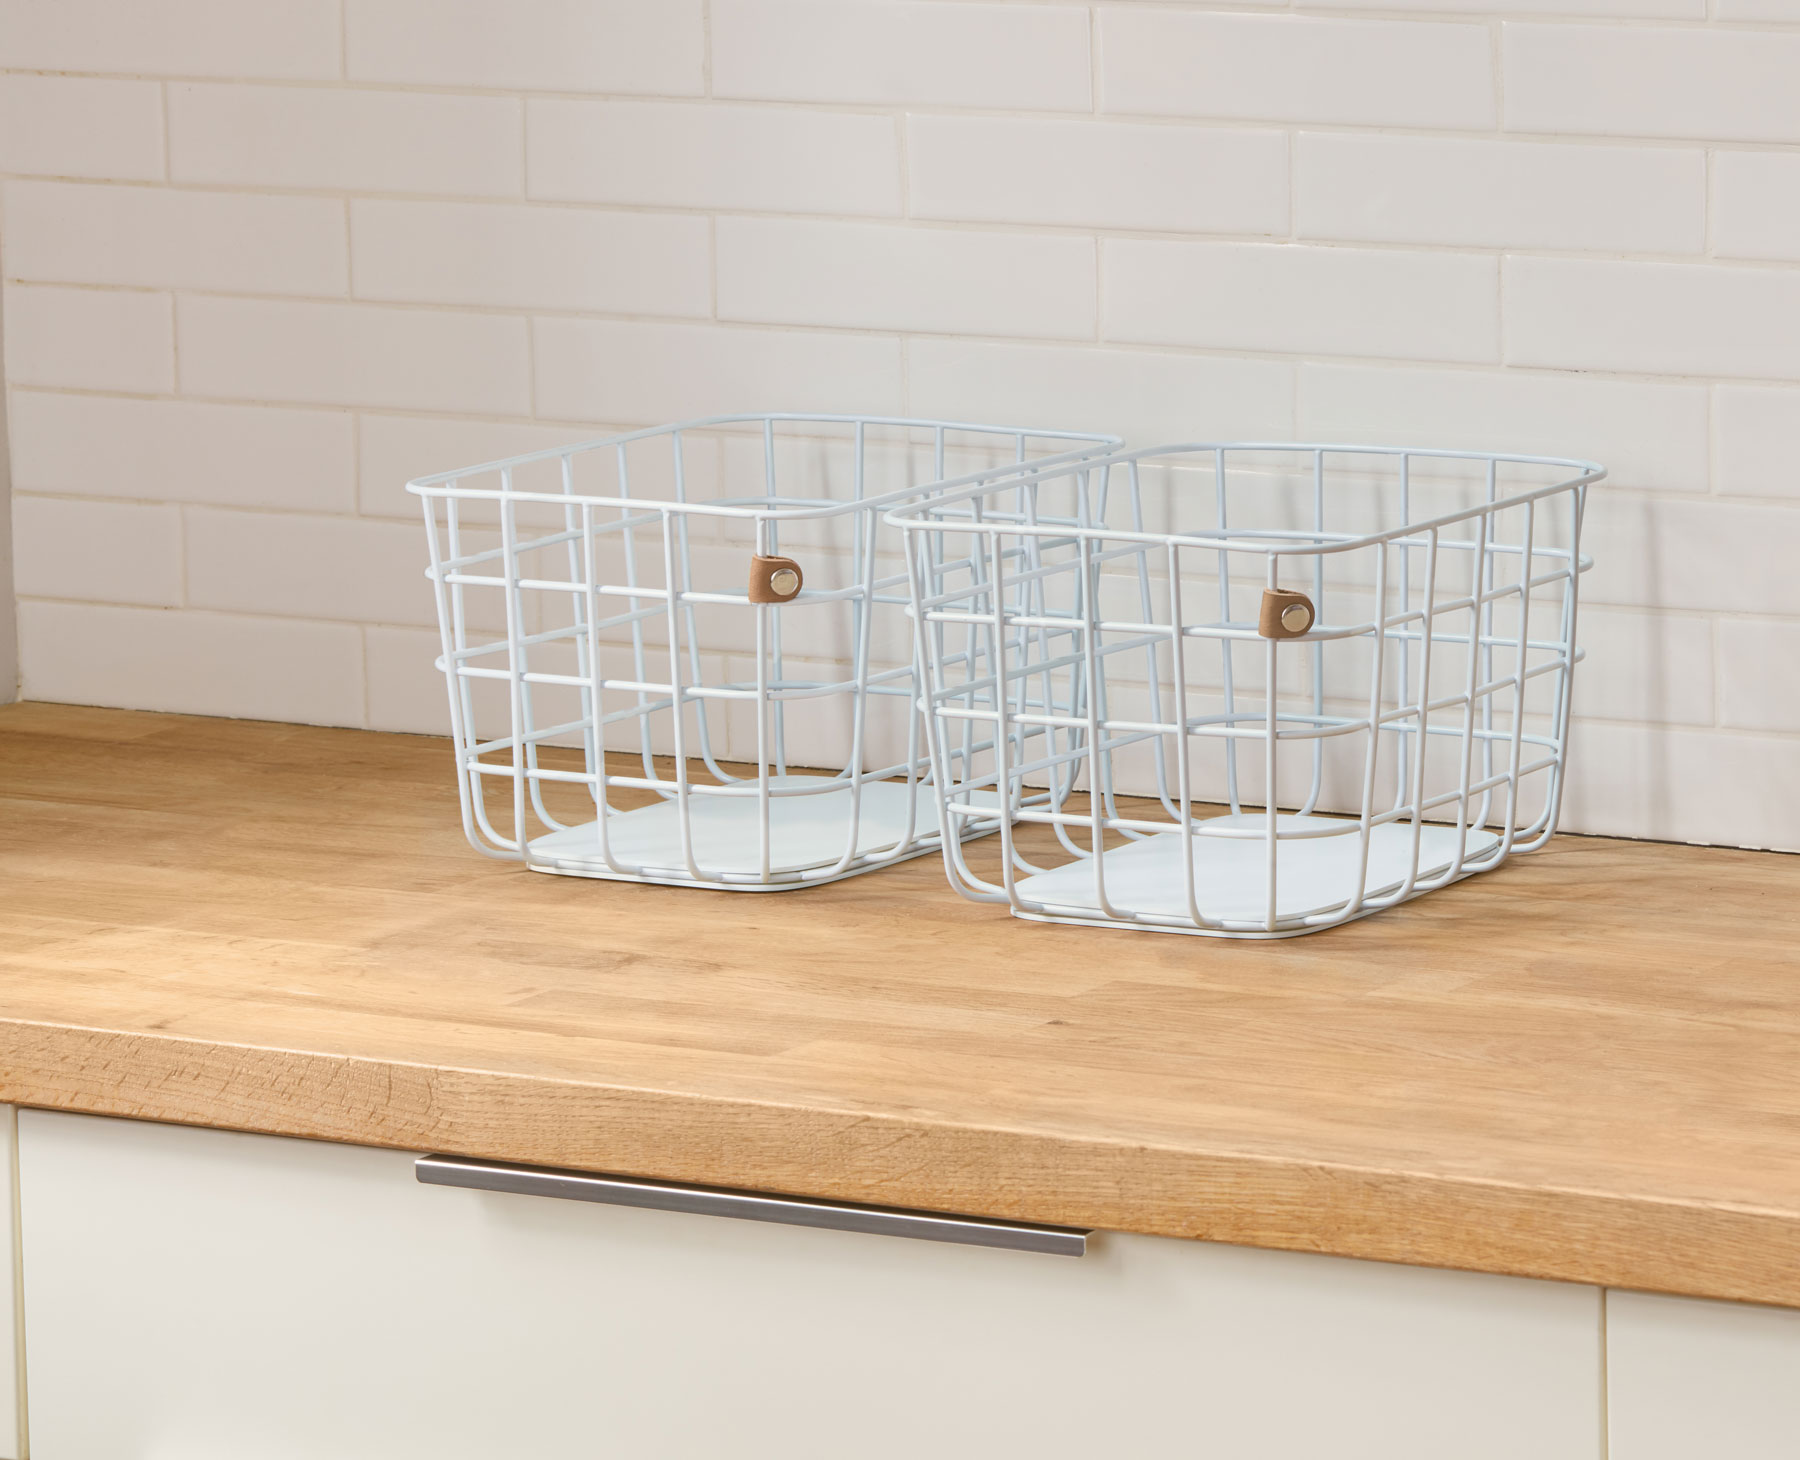 High school graduation gifts - open spaces wire baskets in white (medium)